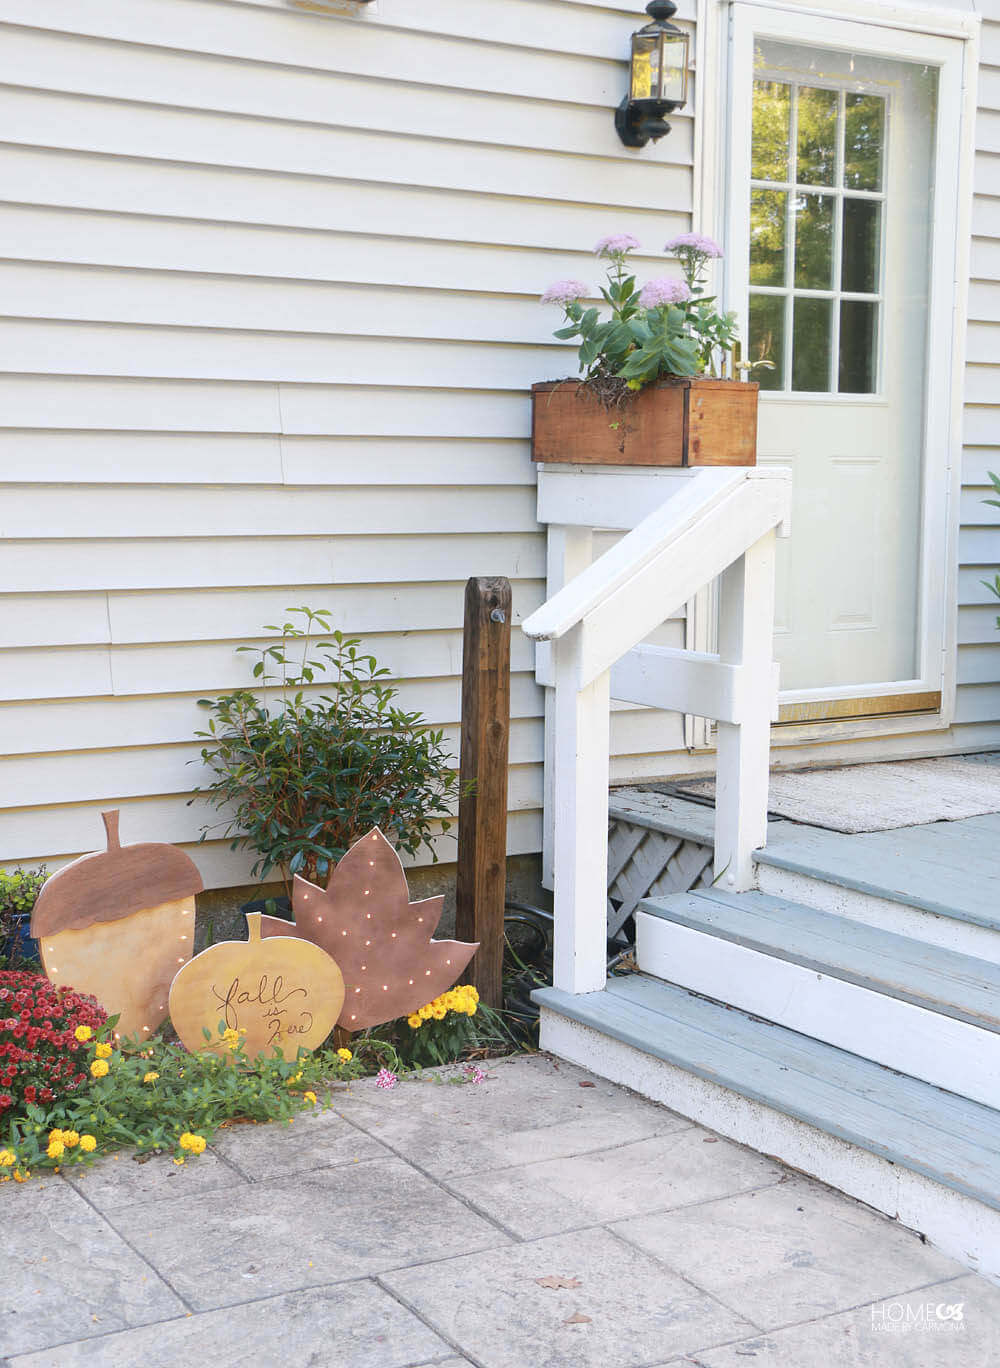 Fall Favorites Cut Out Yard Signs